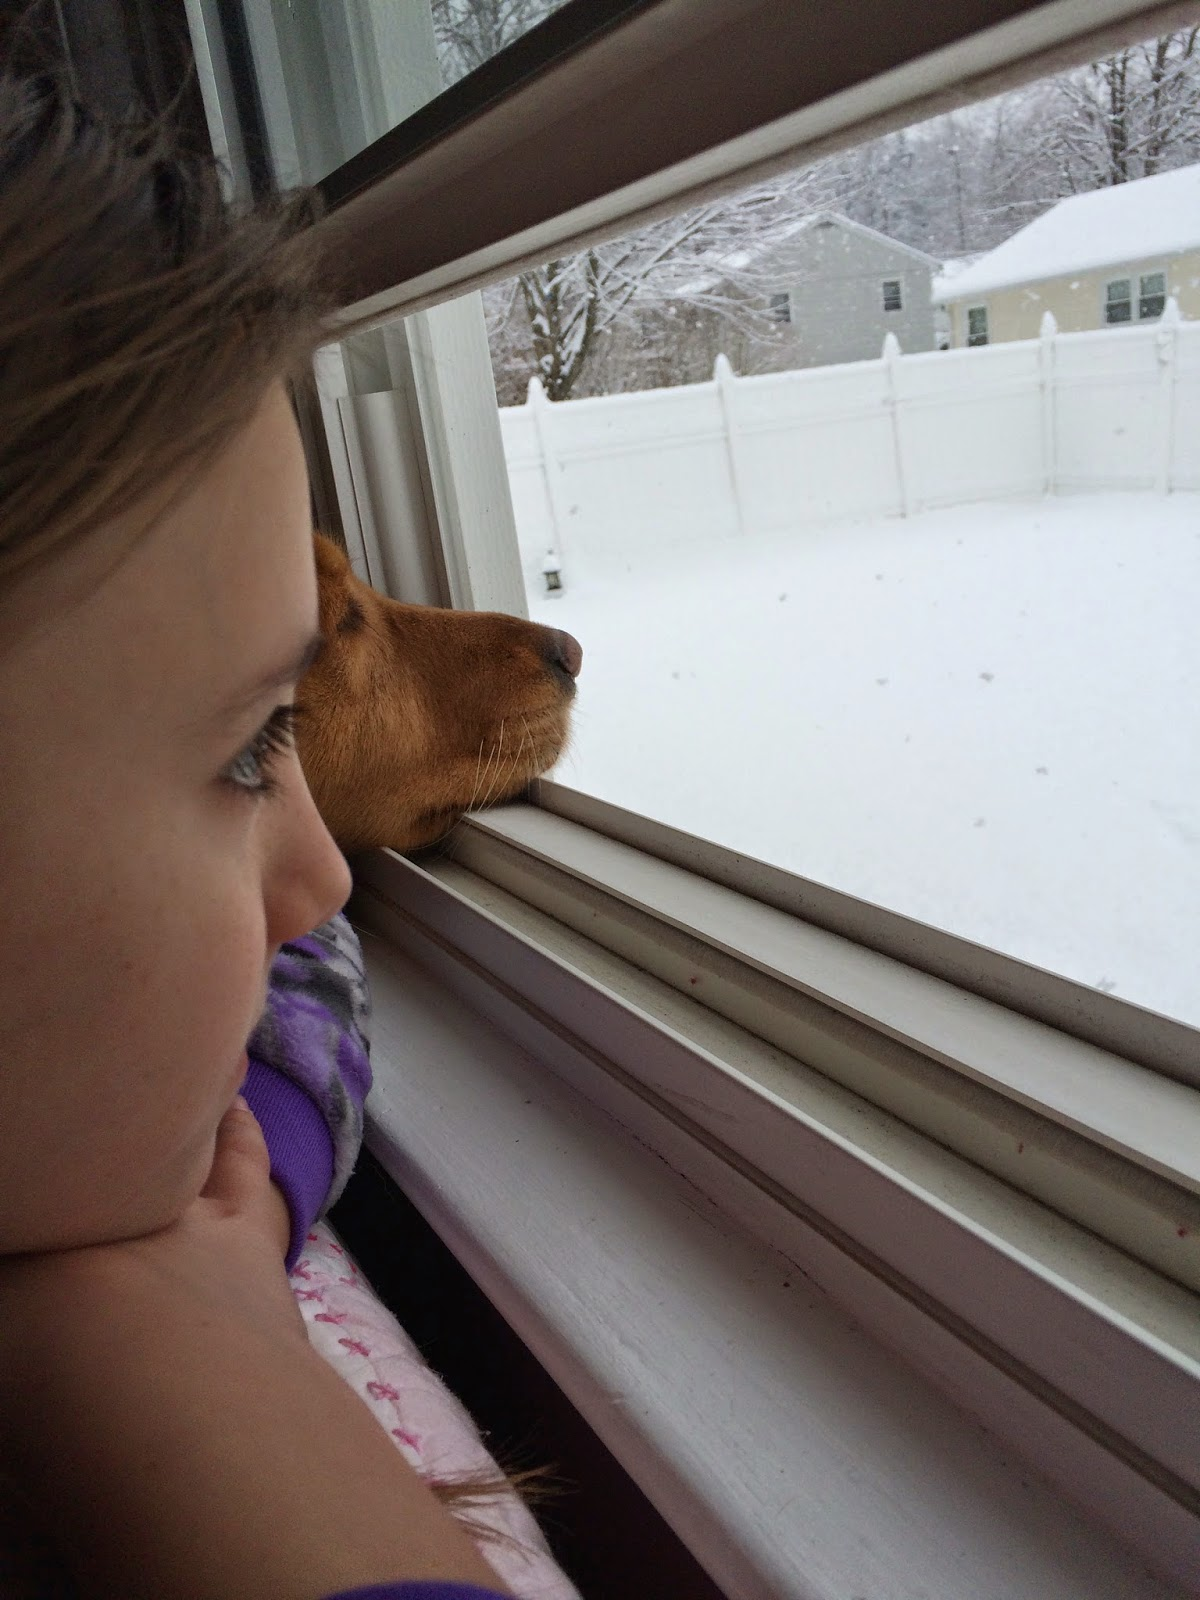 dog looking out window at snowflakes falling